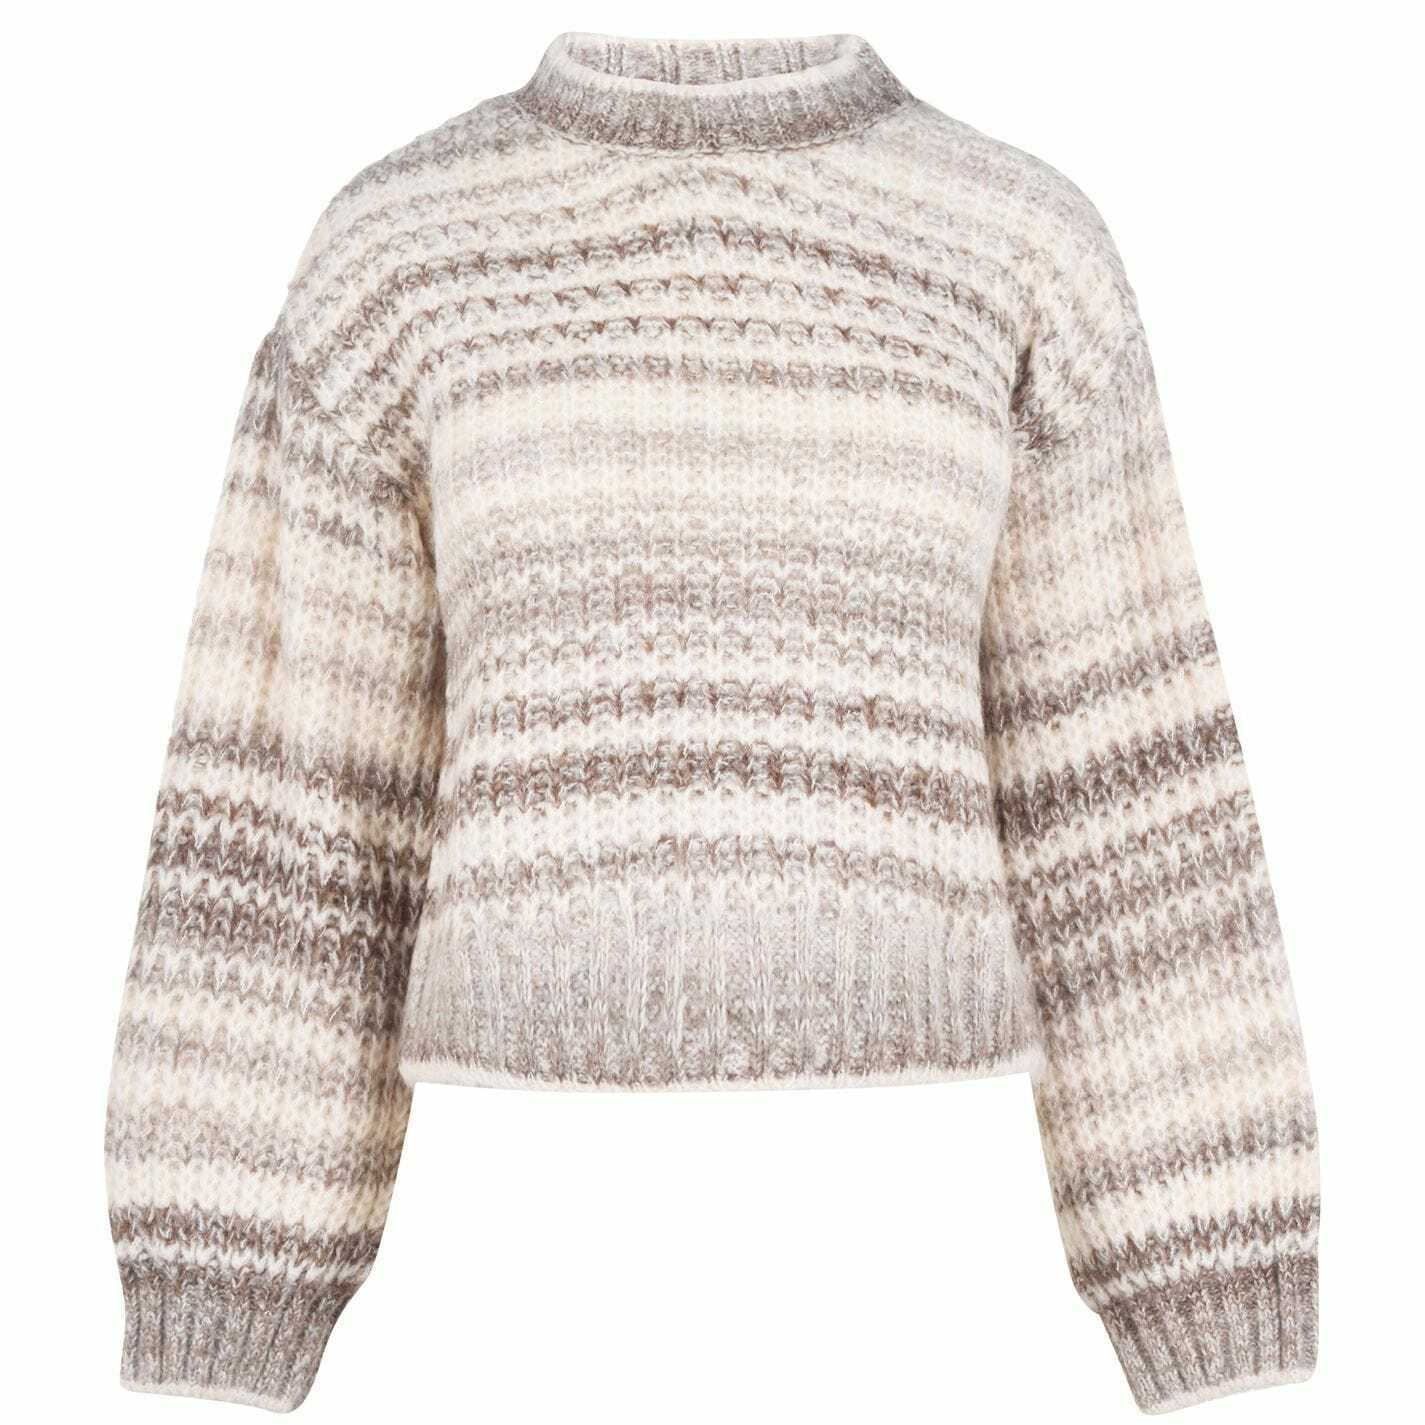 Vero Moda Womens Knitted Jumper Sweater Pullover Crew Neck Loose Fit Pattern